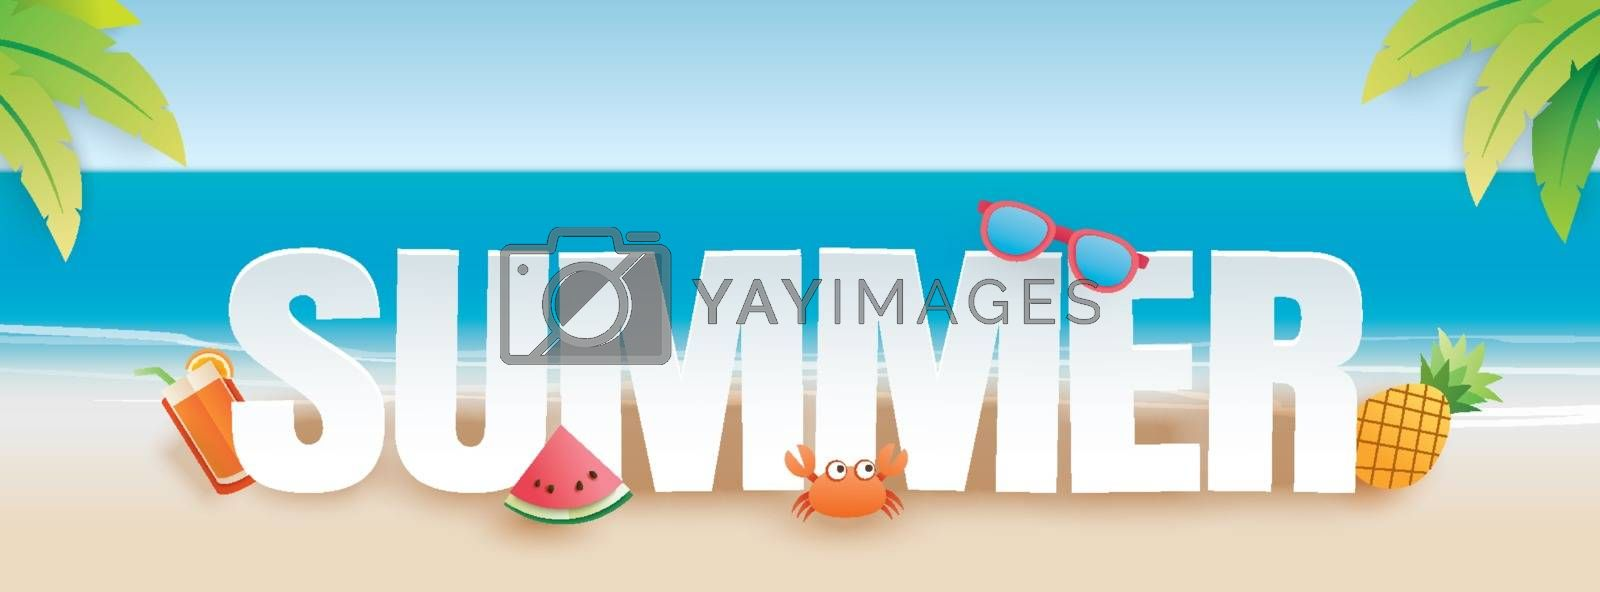 Summer party invitation banner with decoration origami. Paper art and craft style. Vector illustration of life ring, ice cream, camera, watermelon, sunglasses.